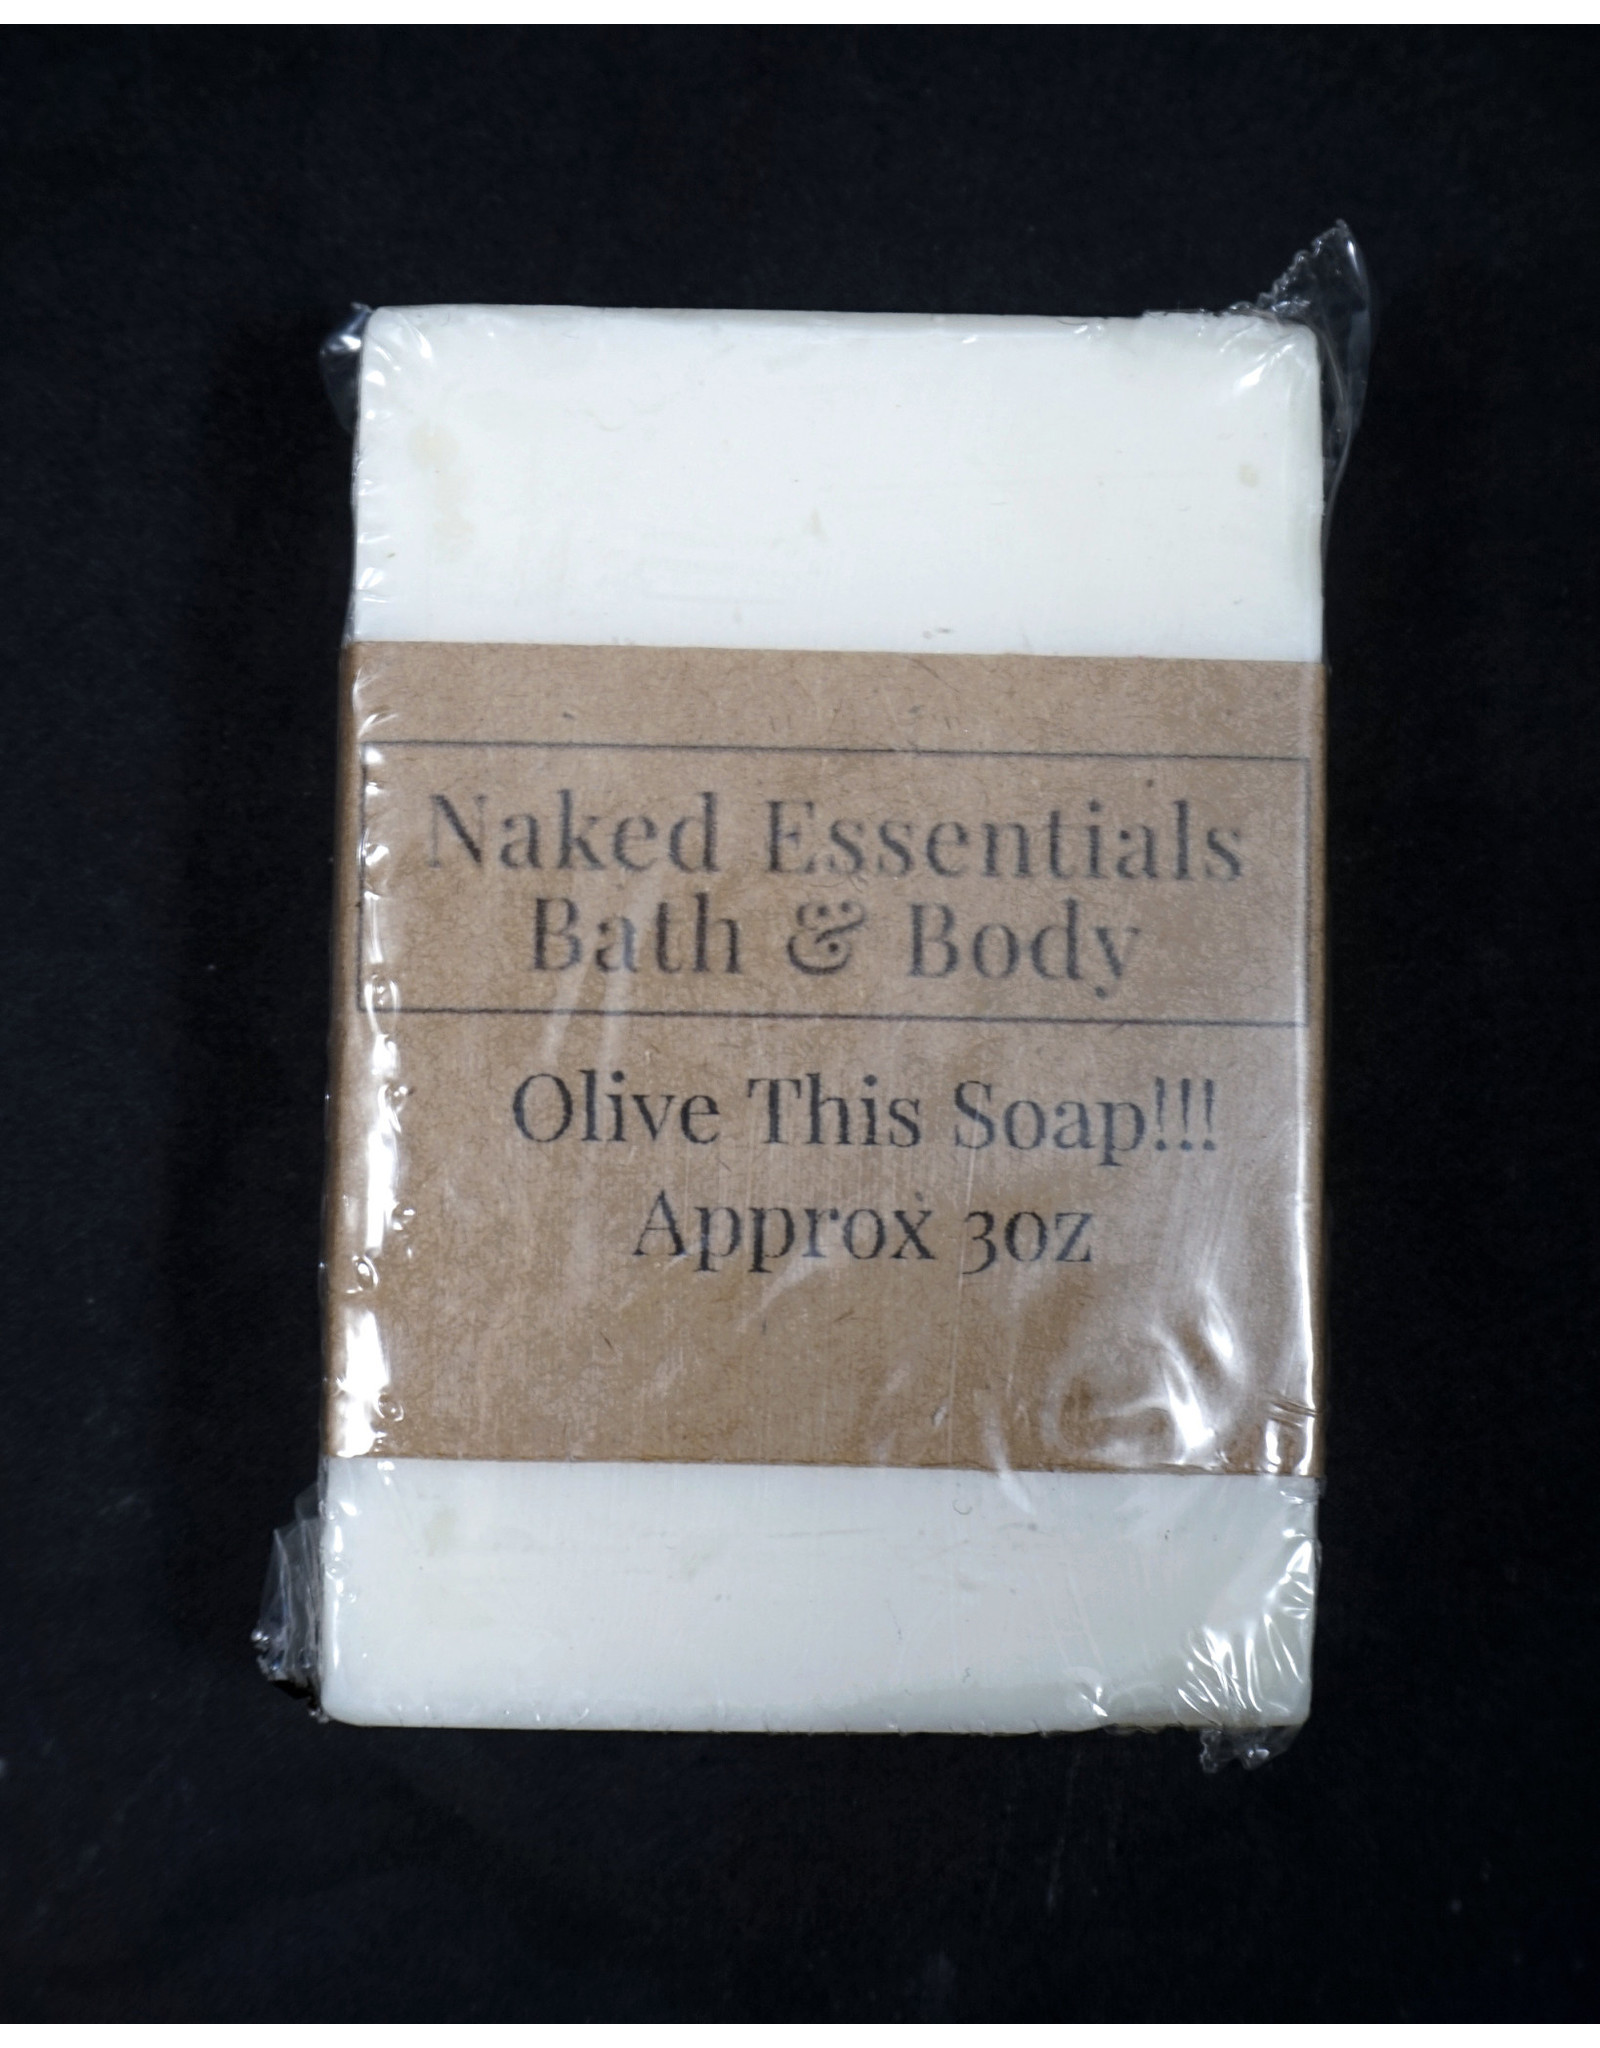 Naked Essentials Naked Essentials – Olive This Soap!!!!!